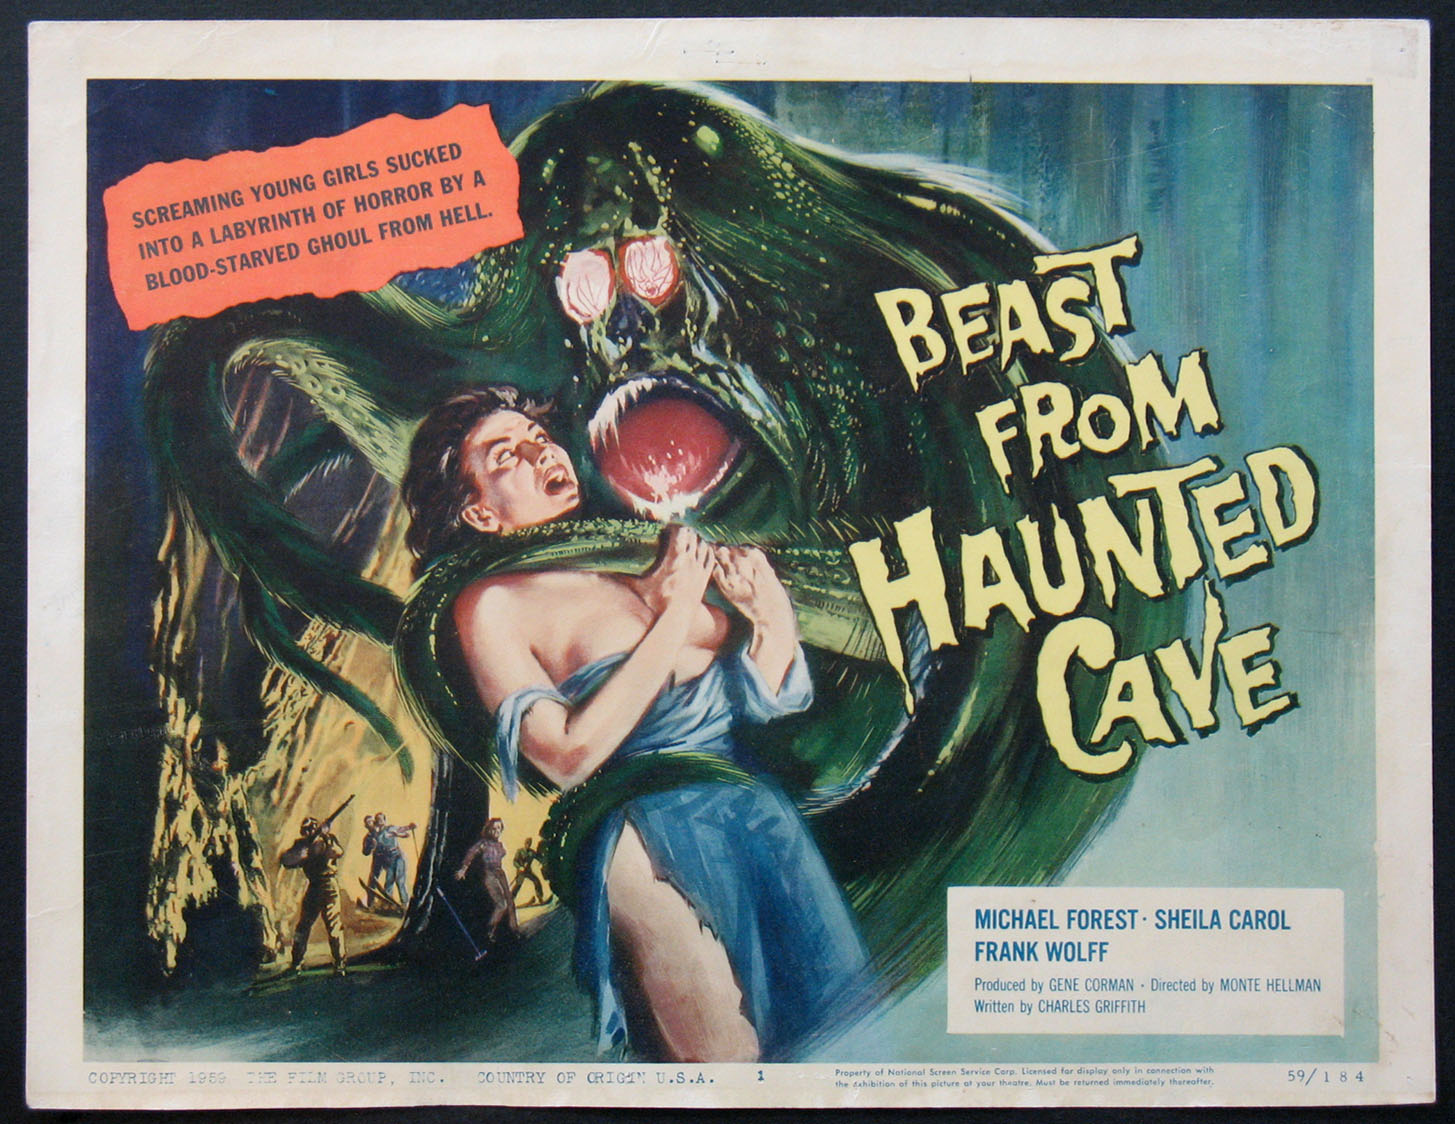 BEAST FROM HAUNTED CAVE @ FilmPosters.com